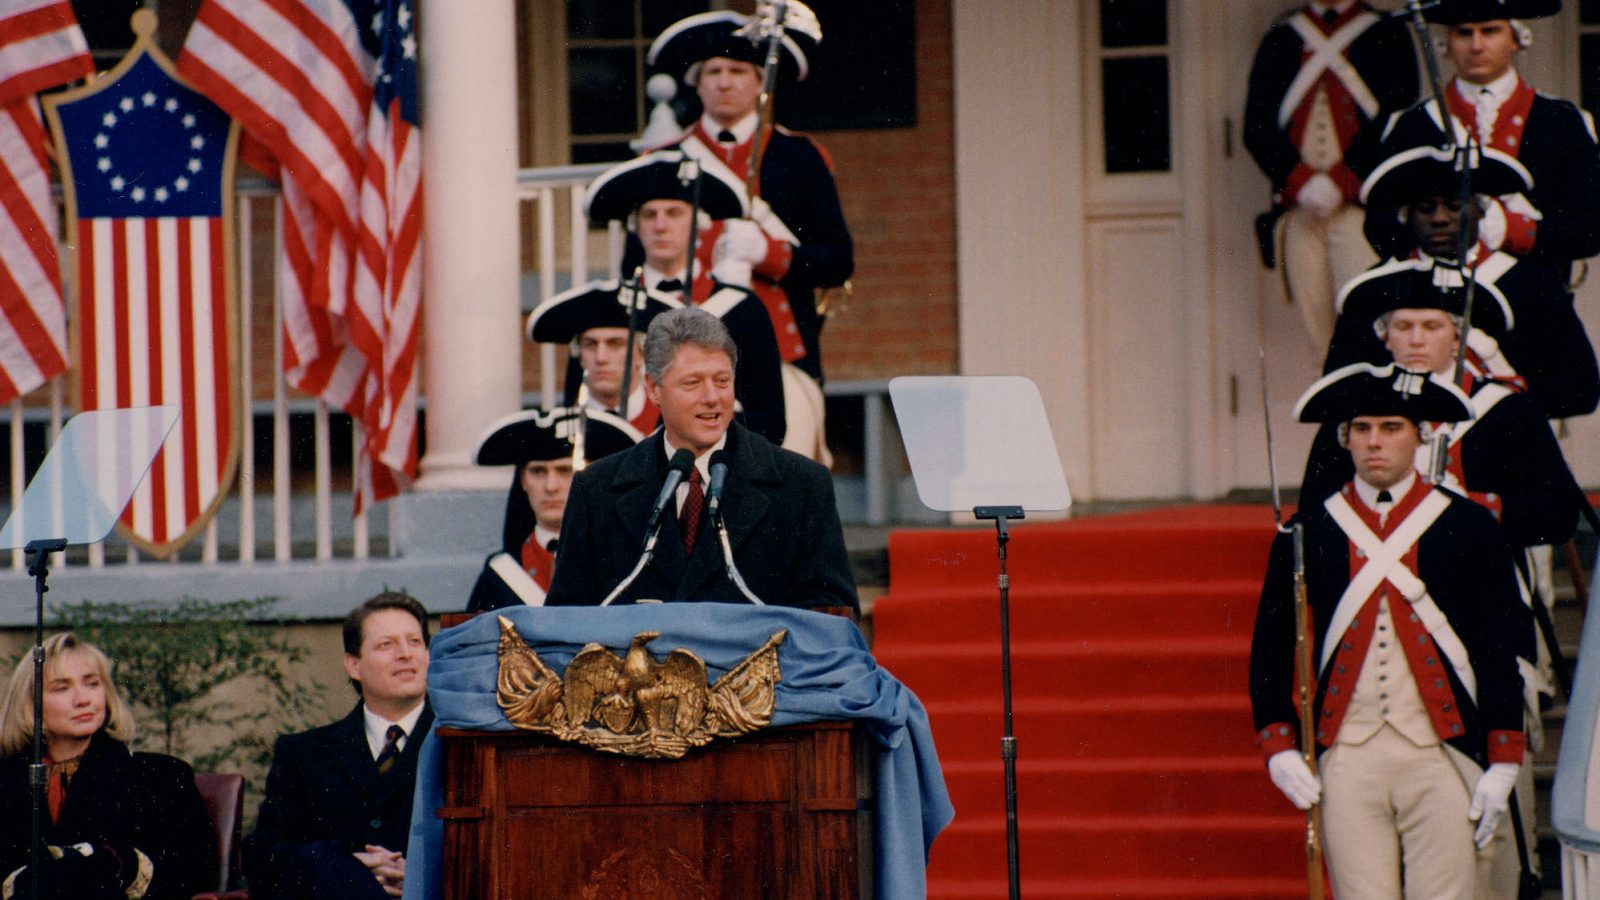 President Bill Clinton speaks from the steps of the Old North Building during his inaugural events.